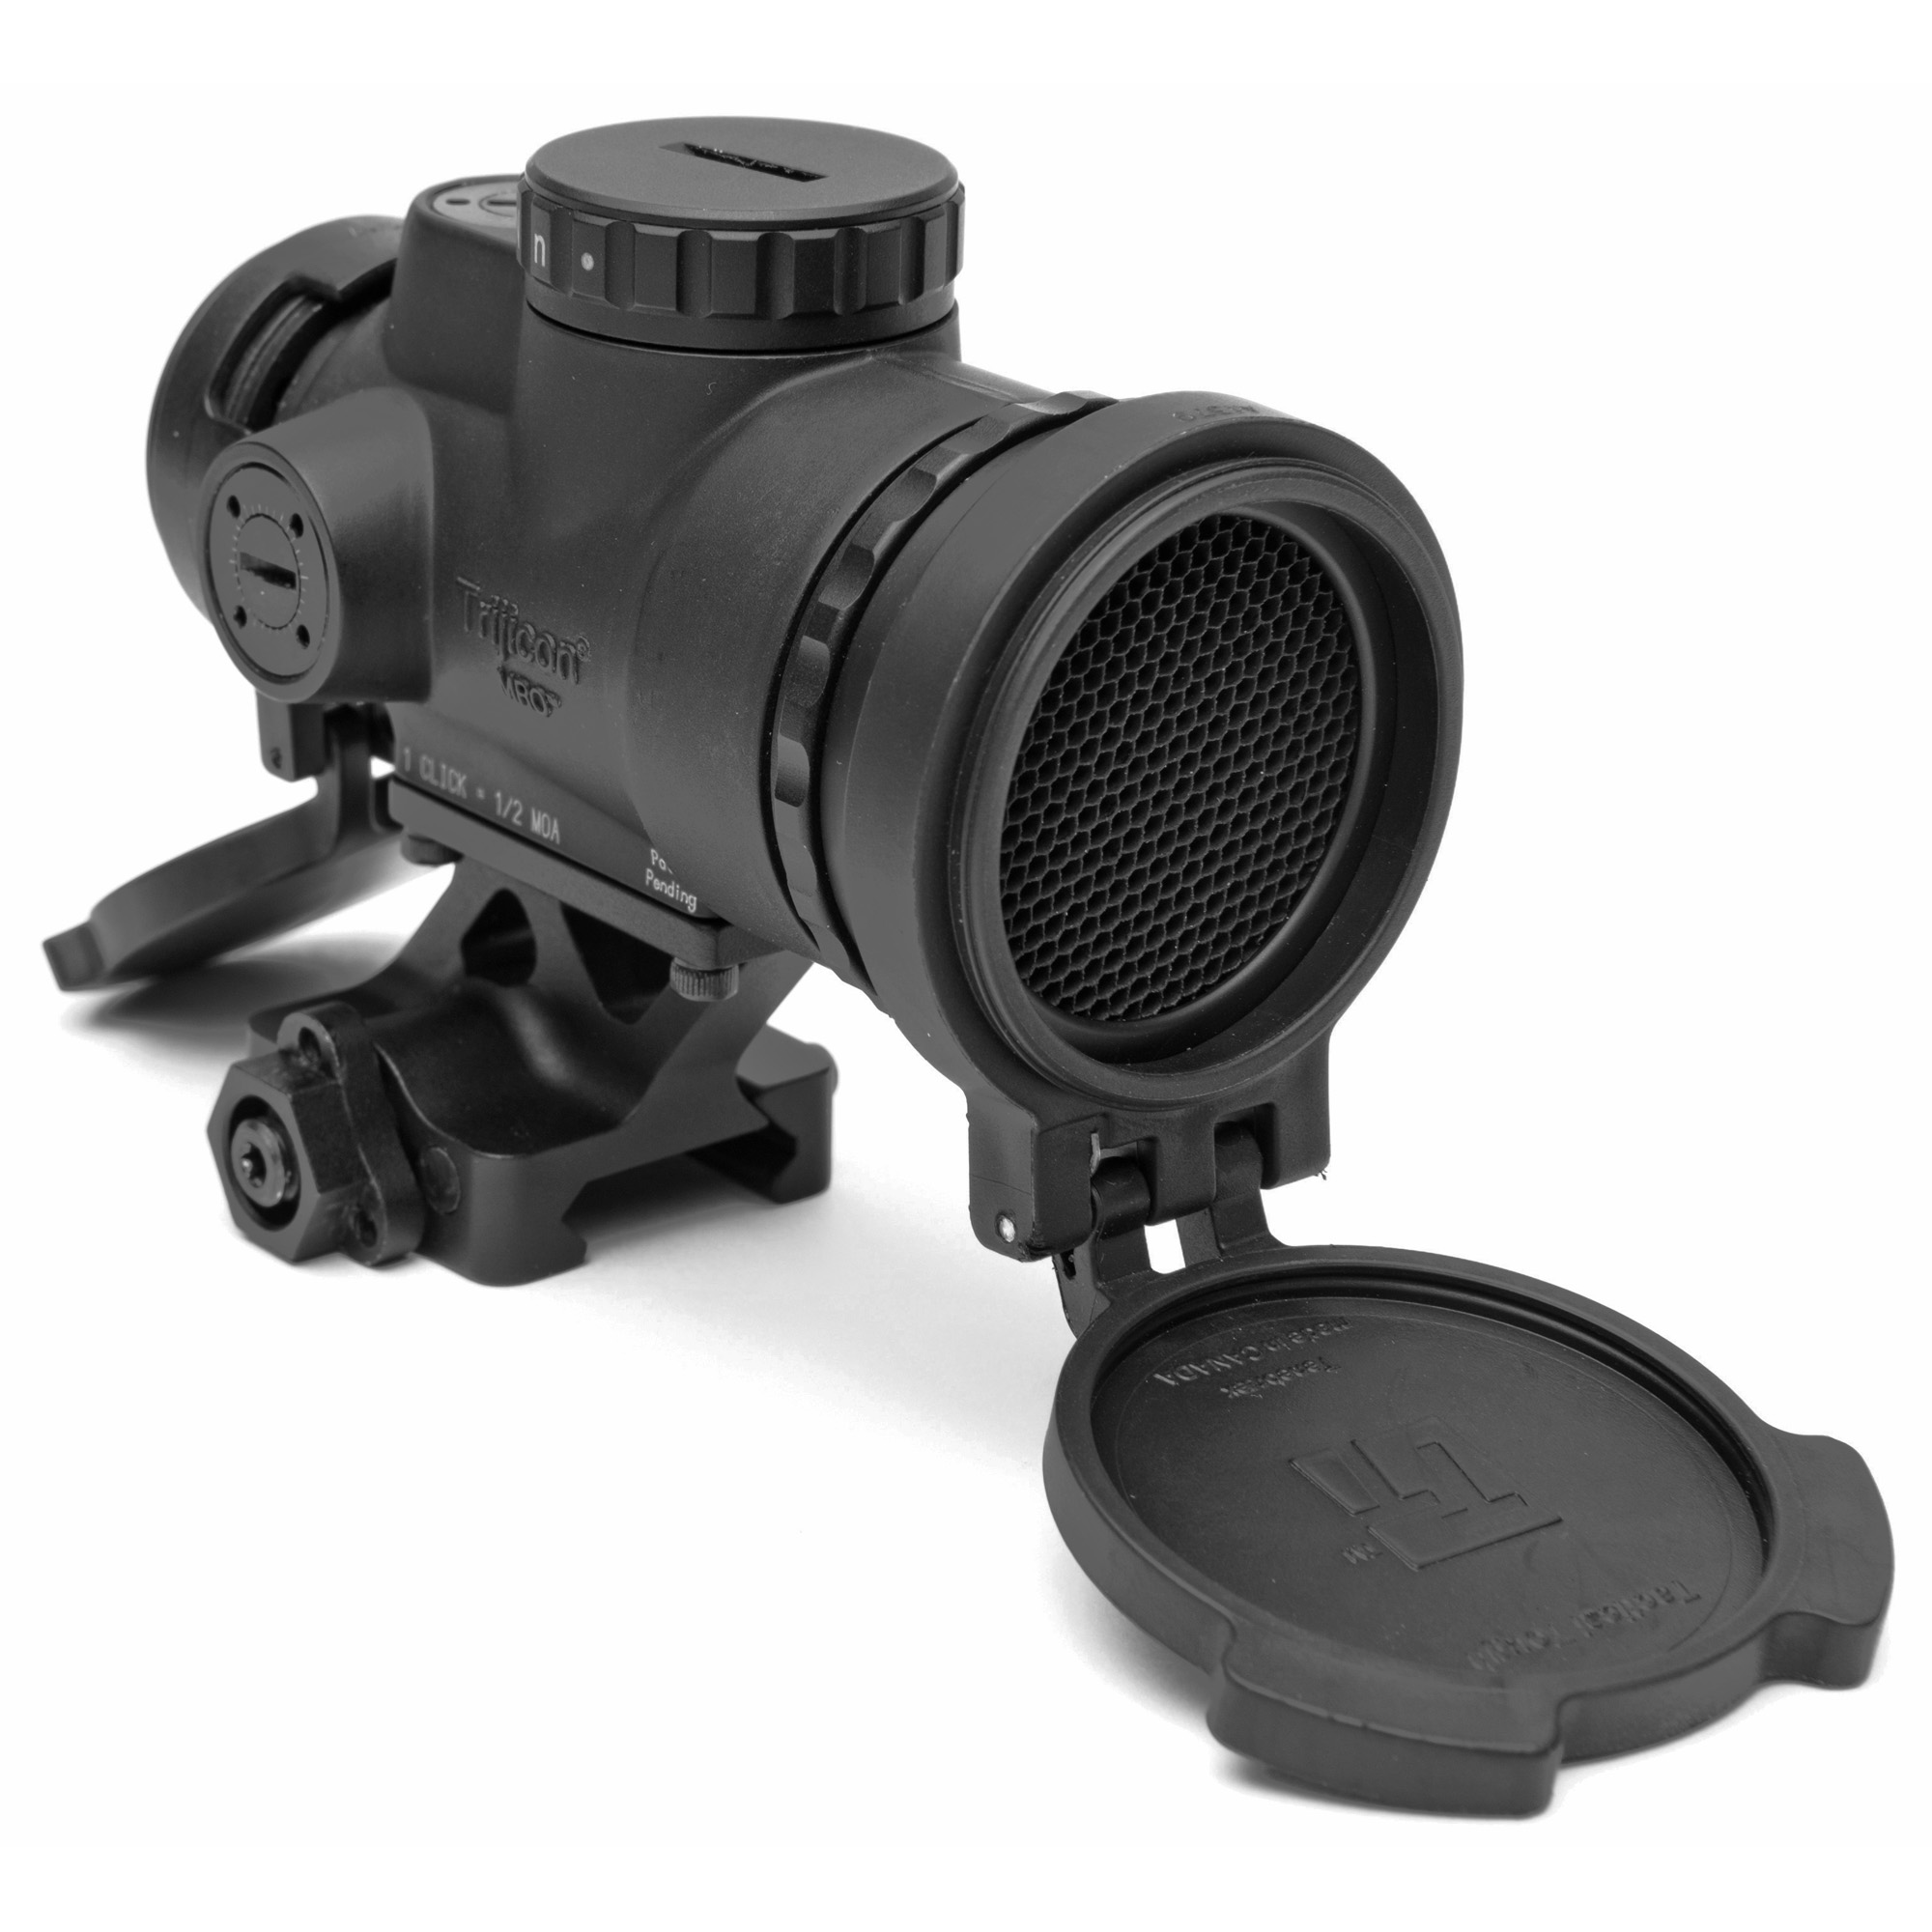 Trijicon Mro Ptrl Red Dot Qr 1/3 Mnt